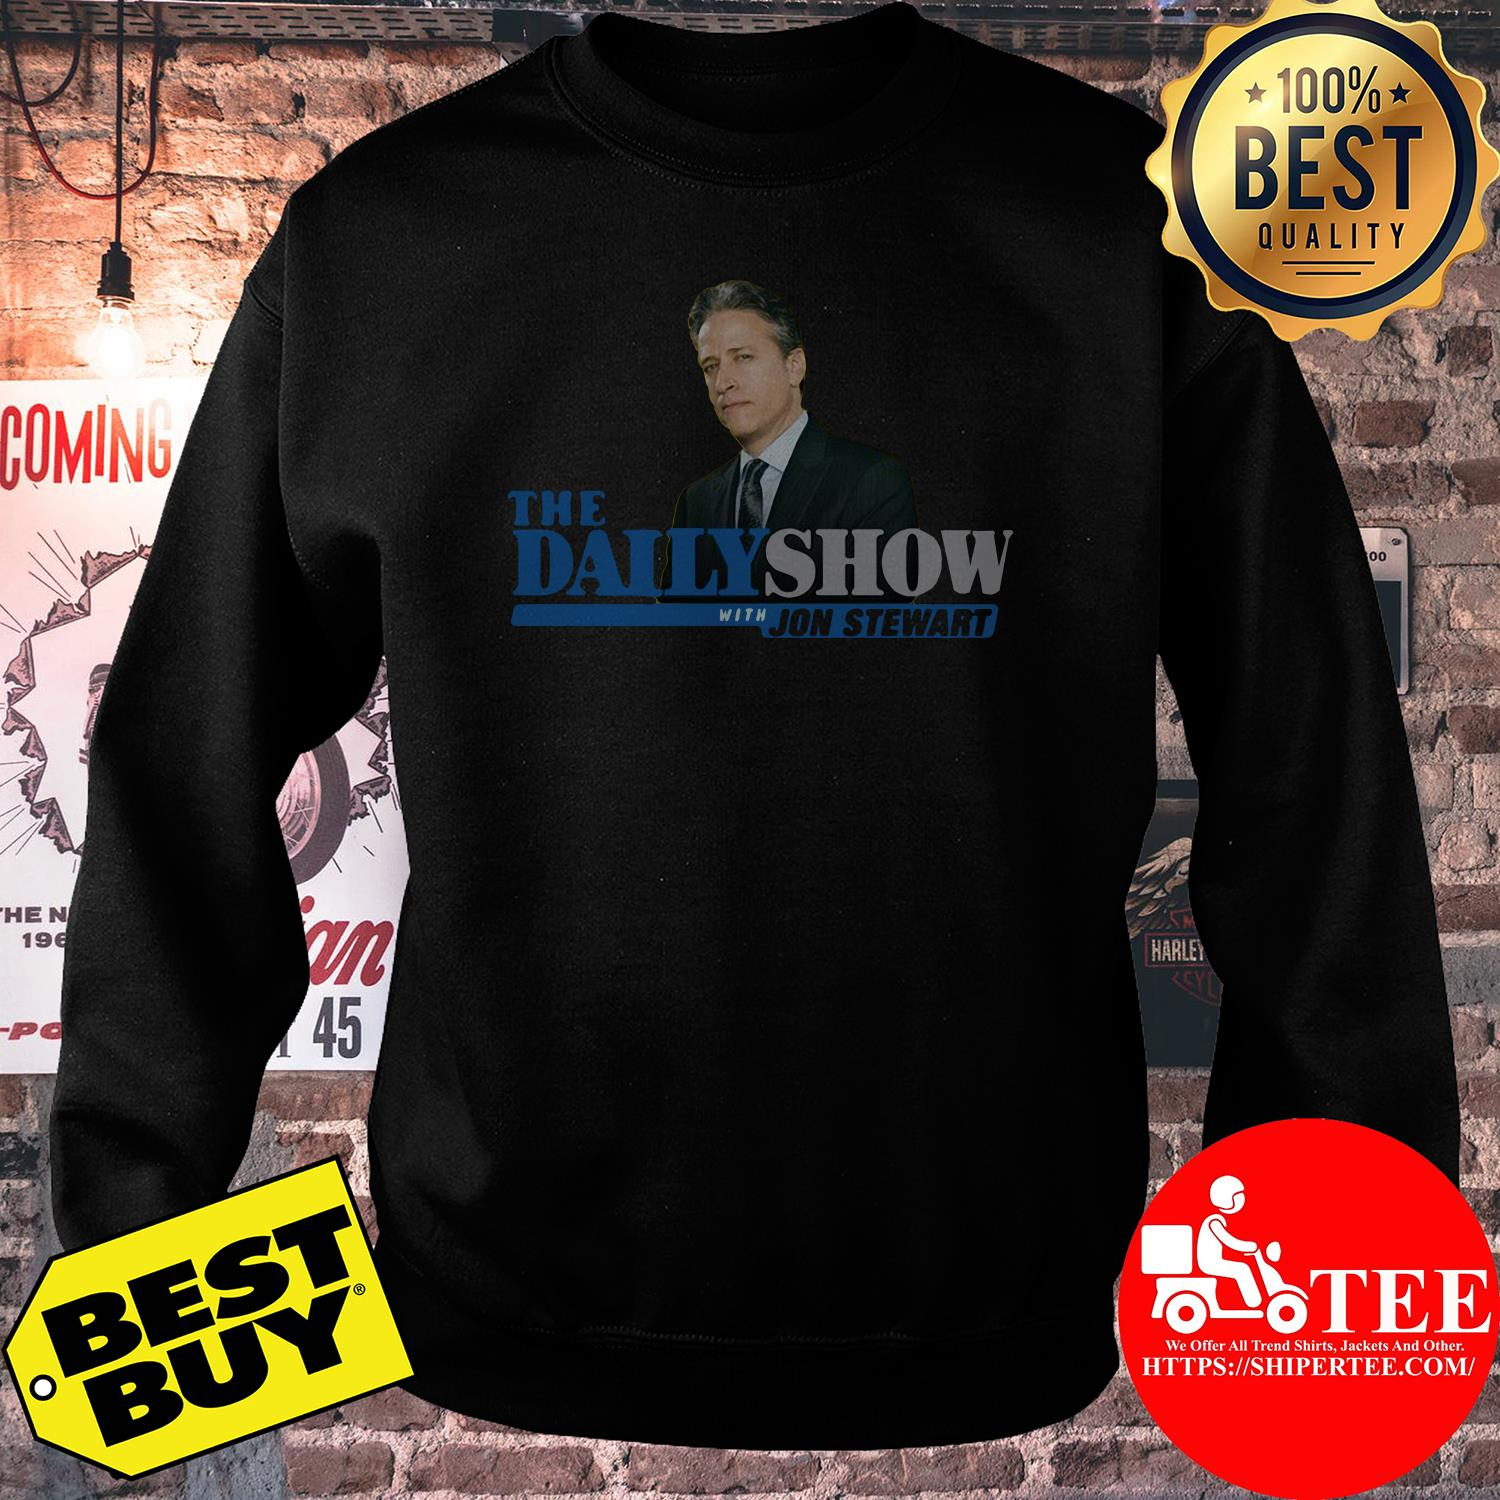 The Daily Show With Jon Stewart sweatshirt